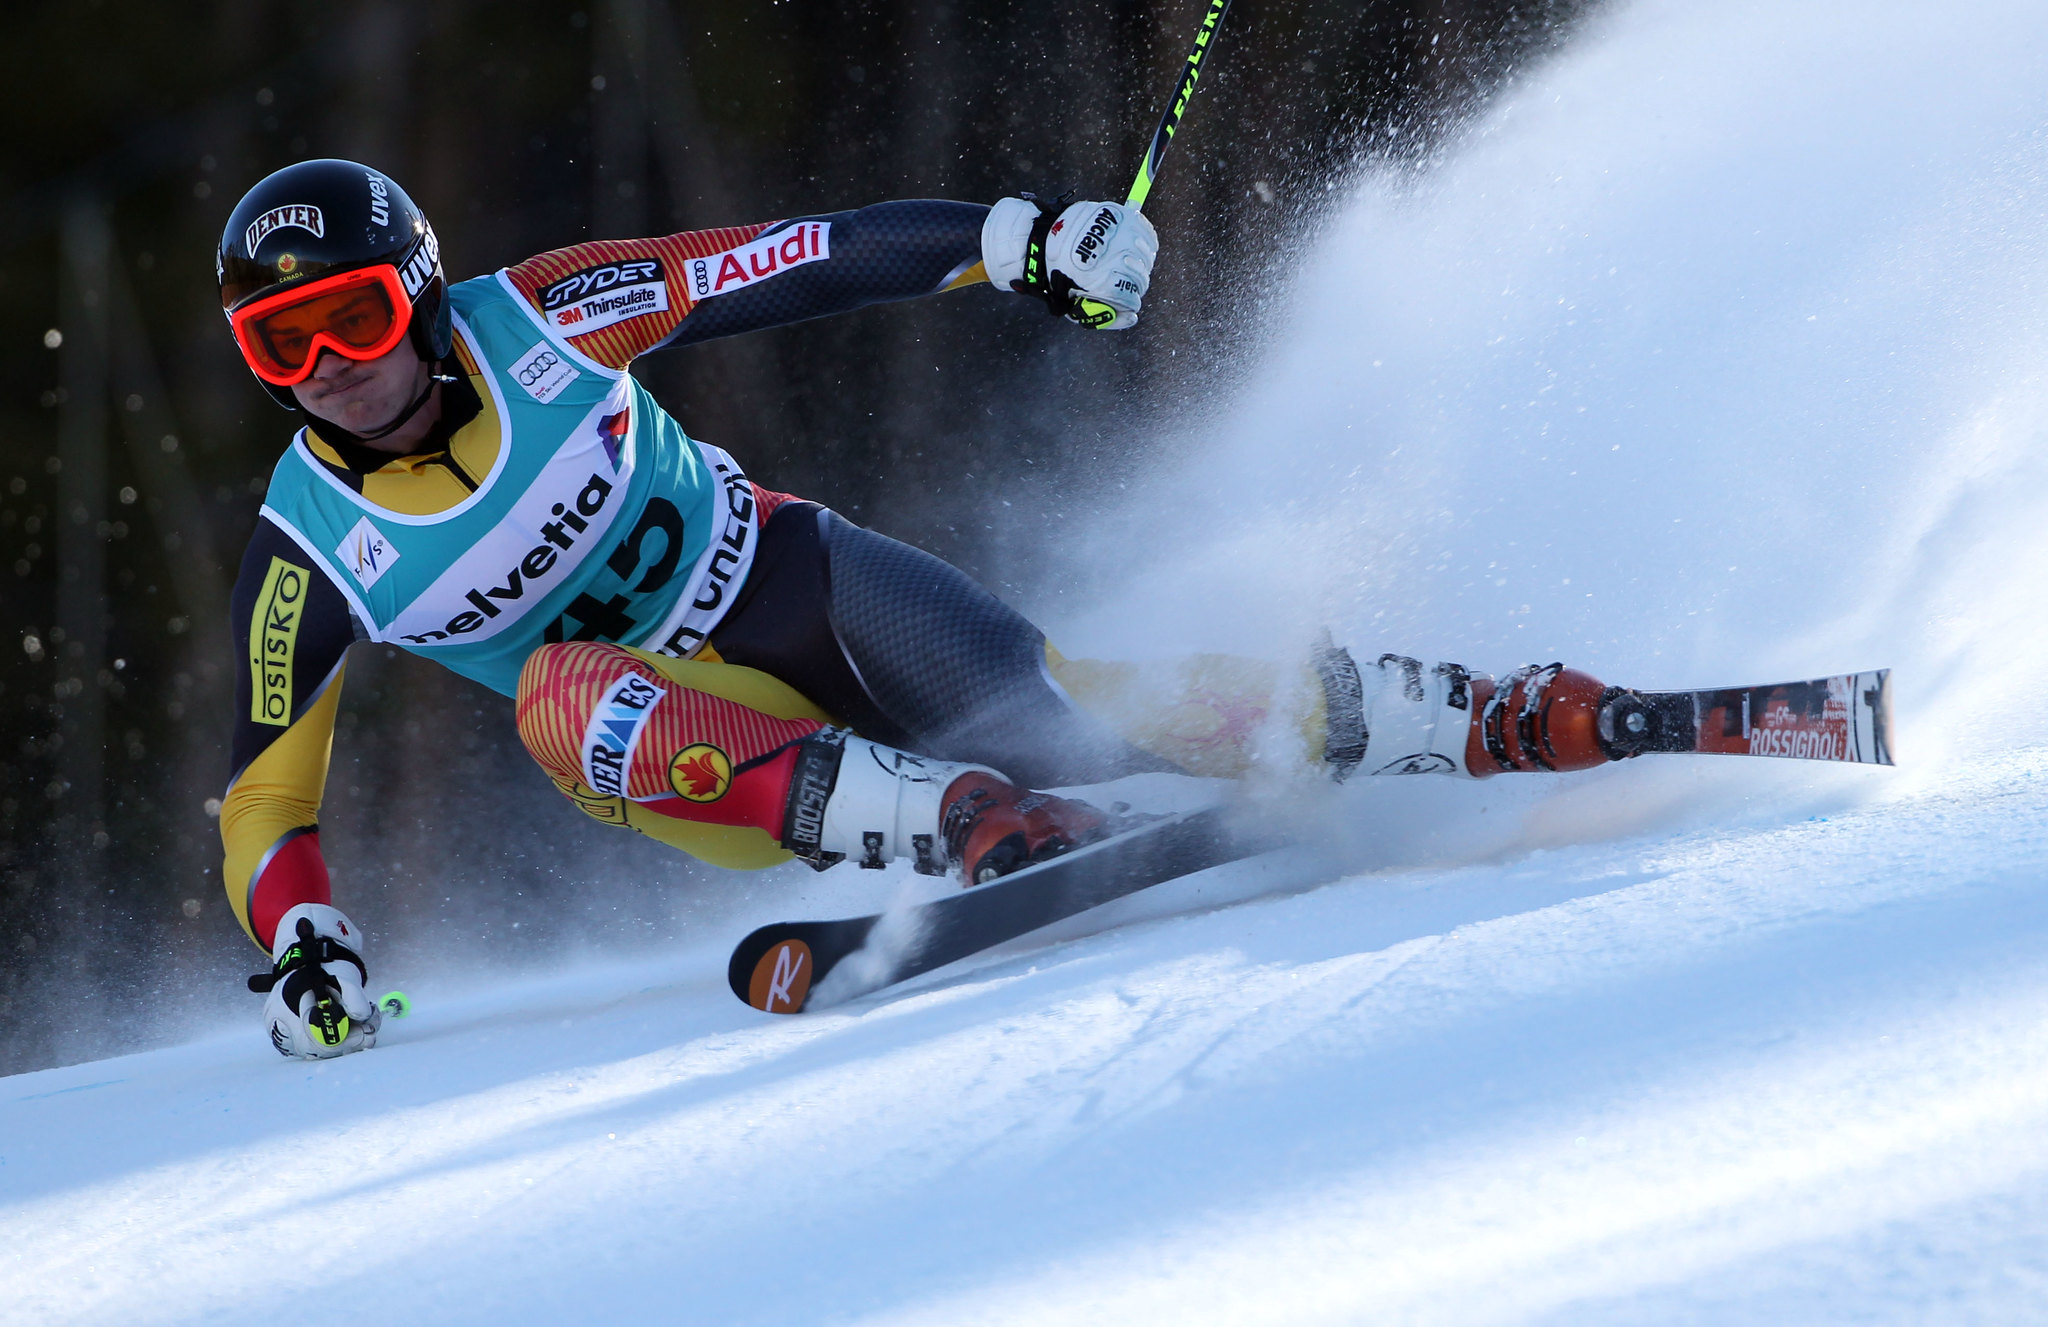 Trevor Philp in action in the Beaver Creek World Cup giant slalom.